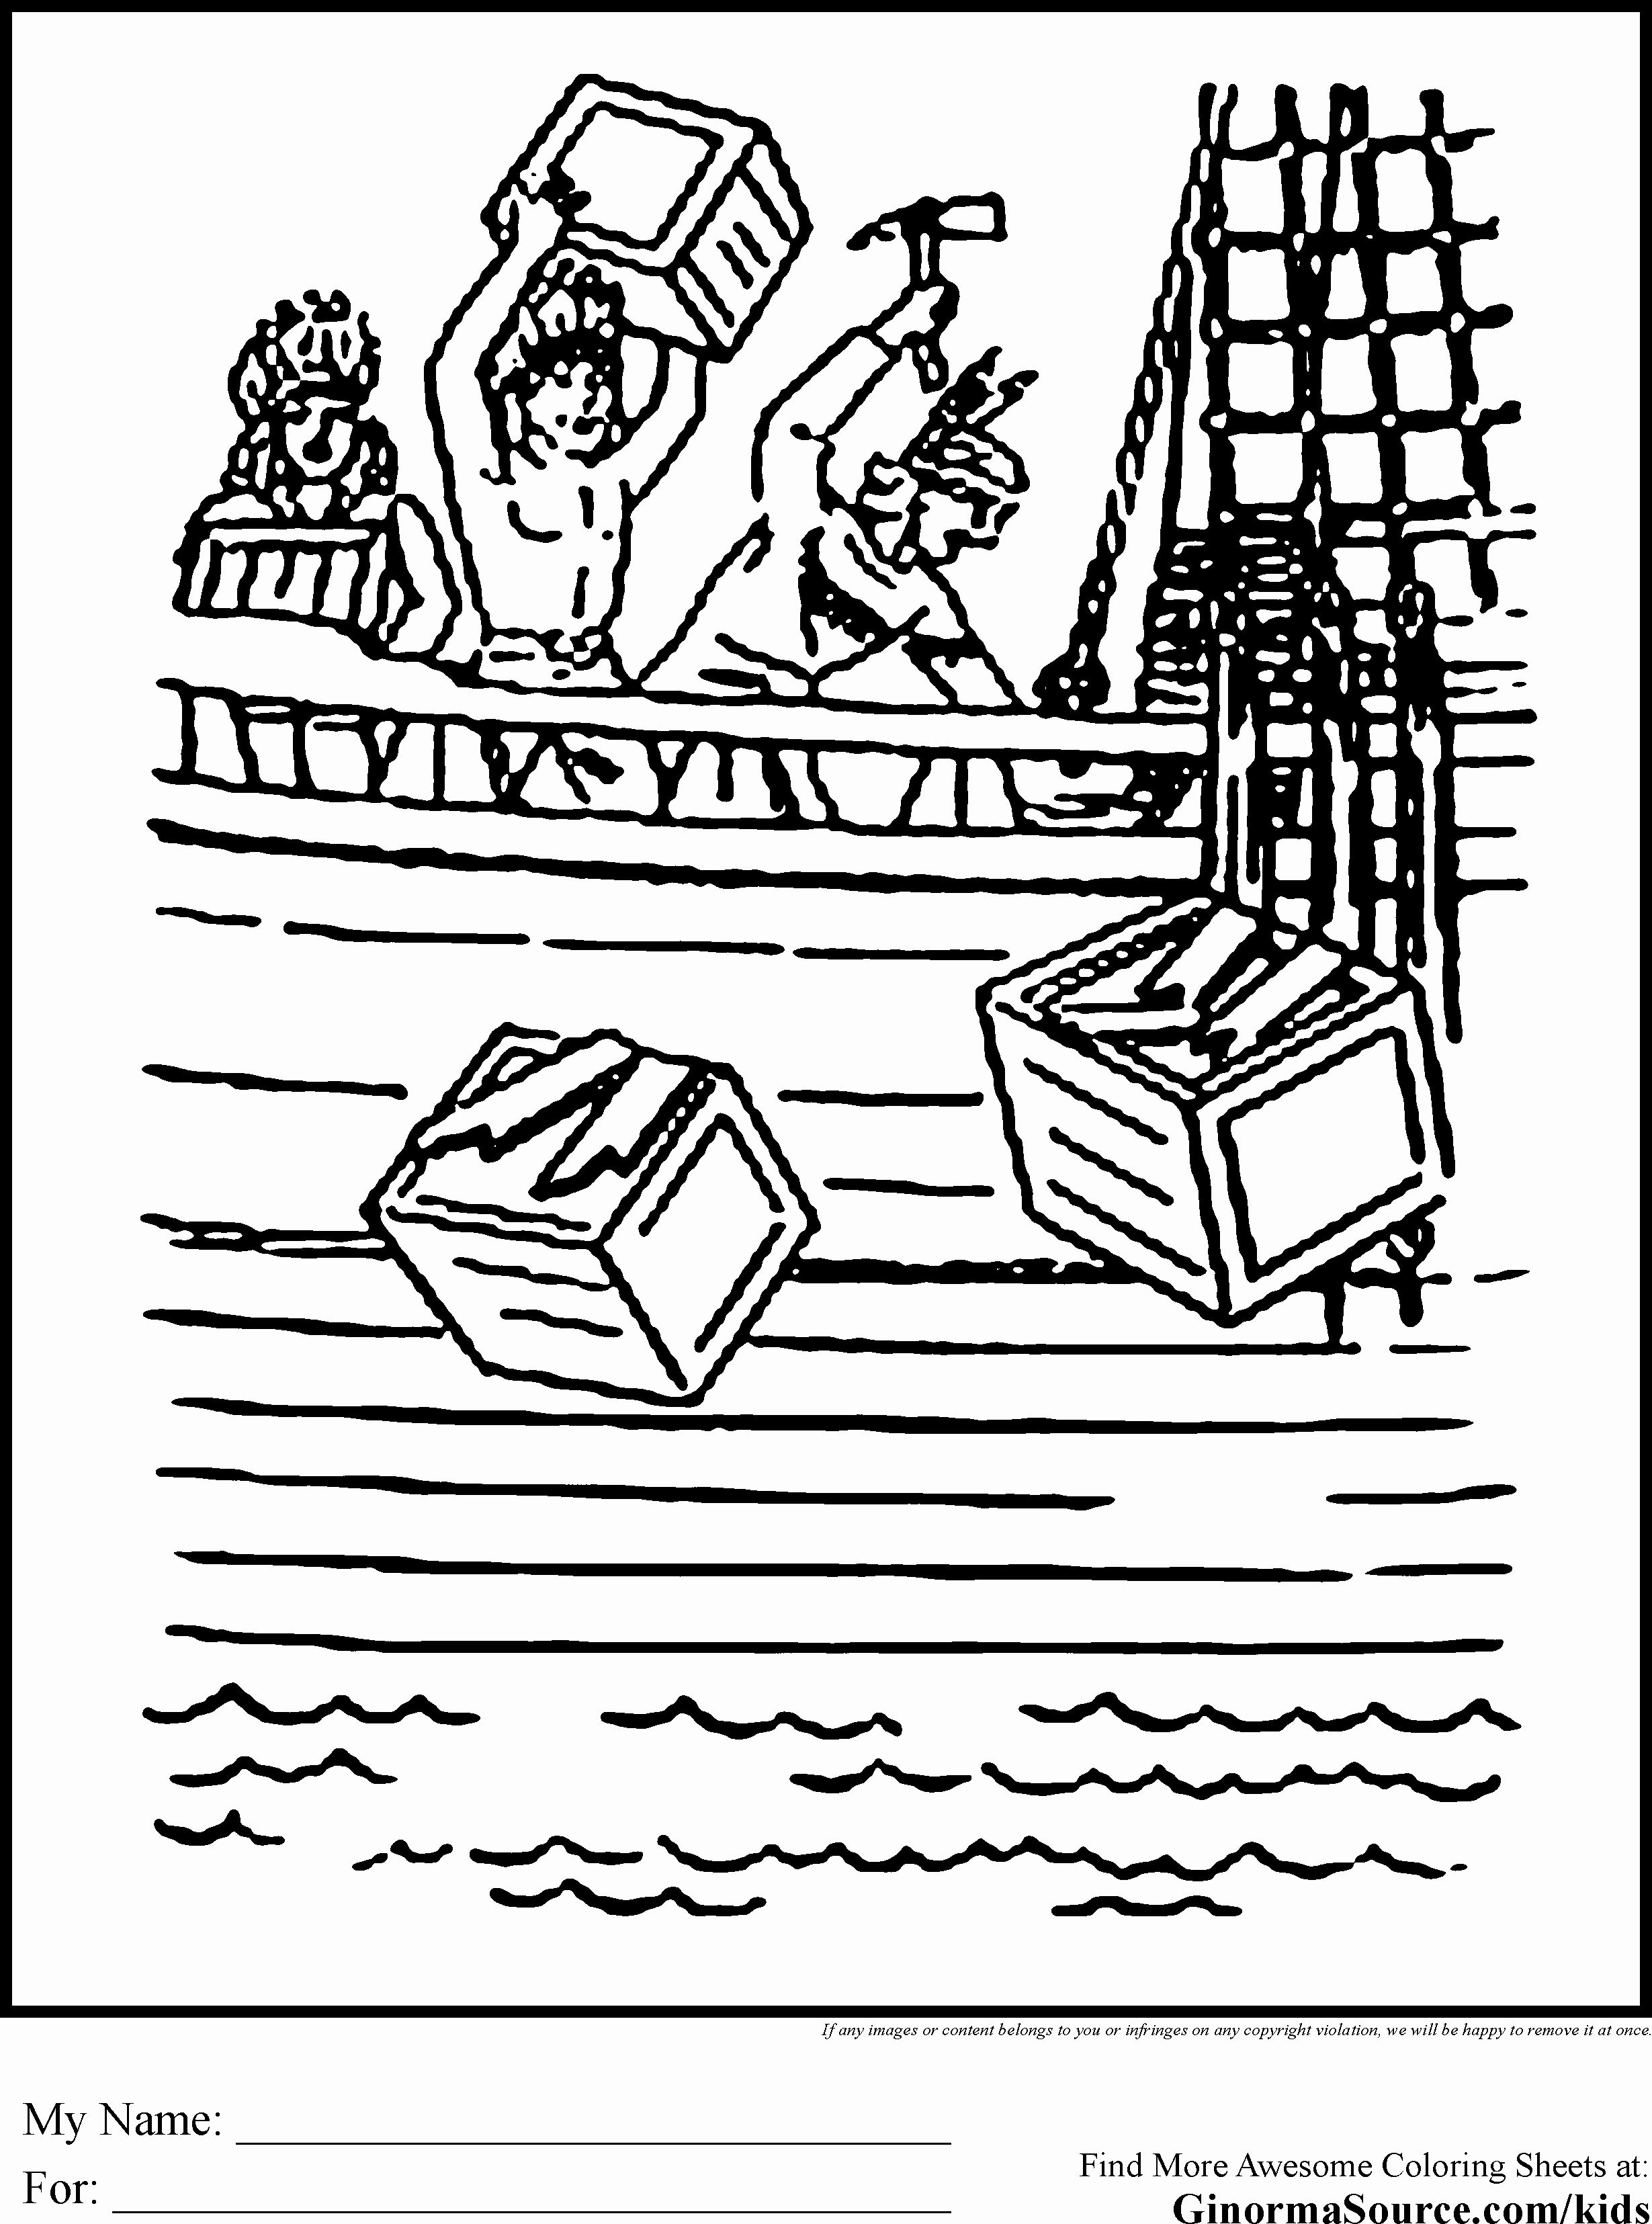 Texas Symbols Coloring Pages Unique Boston Coloring Pages